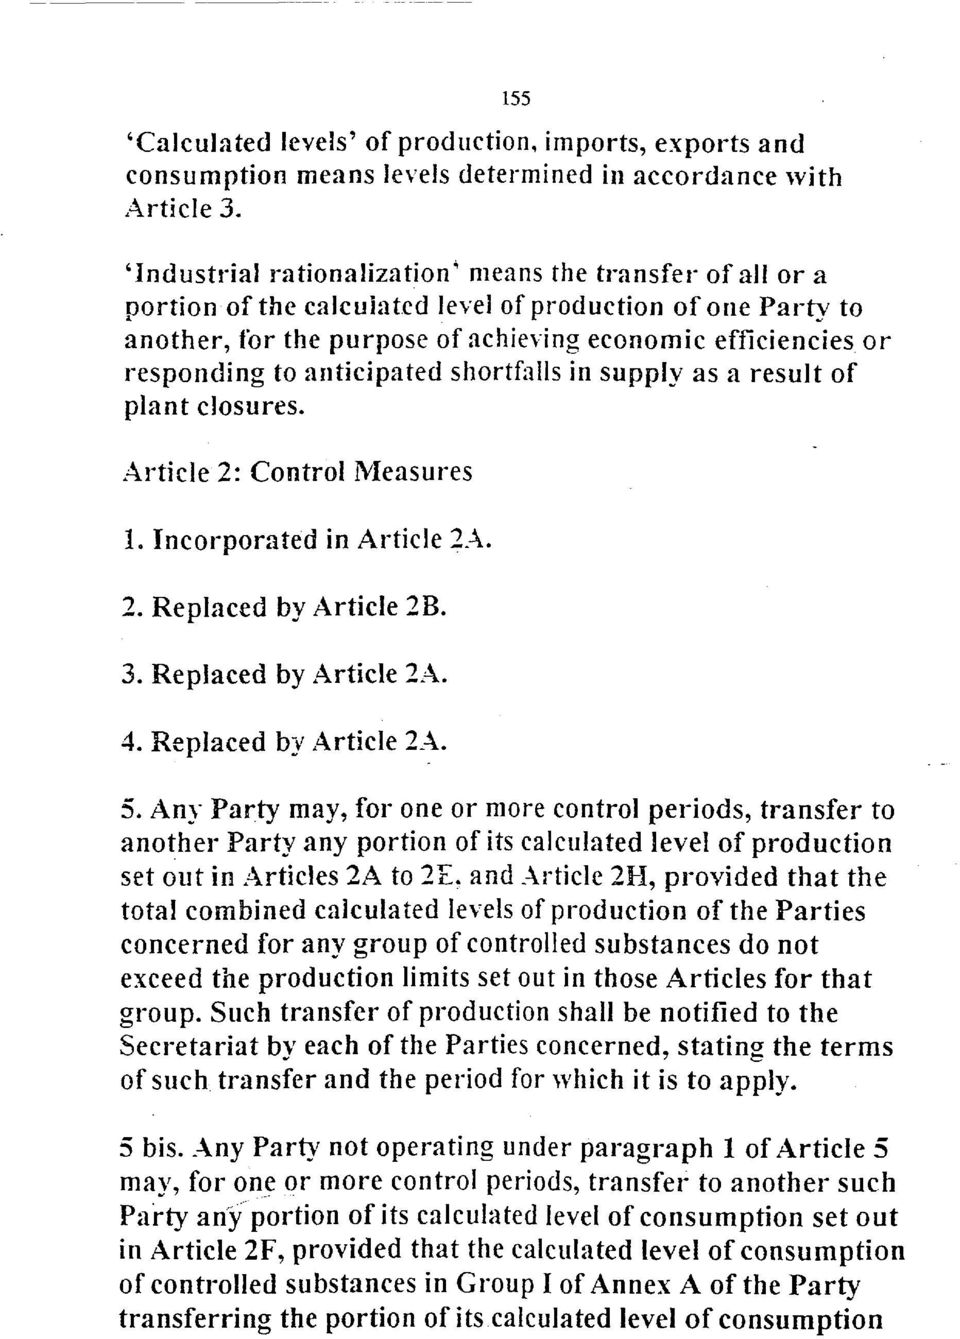 anticipated shortfalls in supply as a result of plant closures. Article 2: Control Measures 1. Incorporated in Article 2A. 2. Replaced by Article 2B. 3. Replaced by Article 2A. 4.